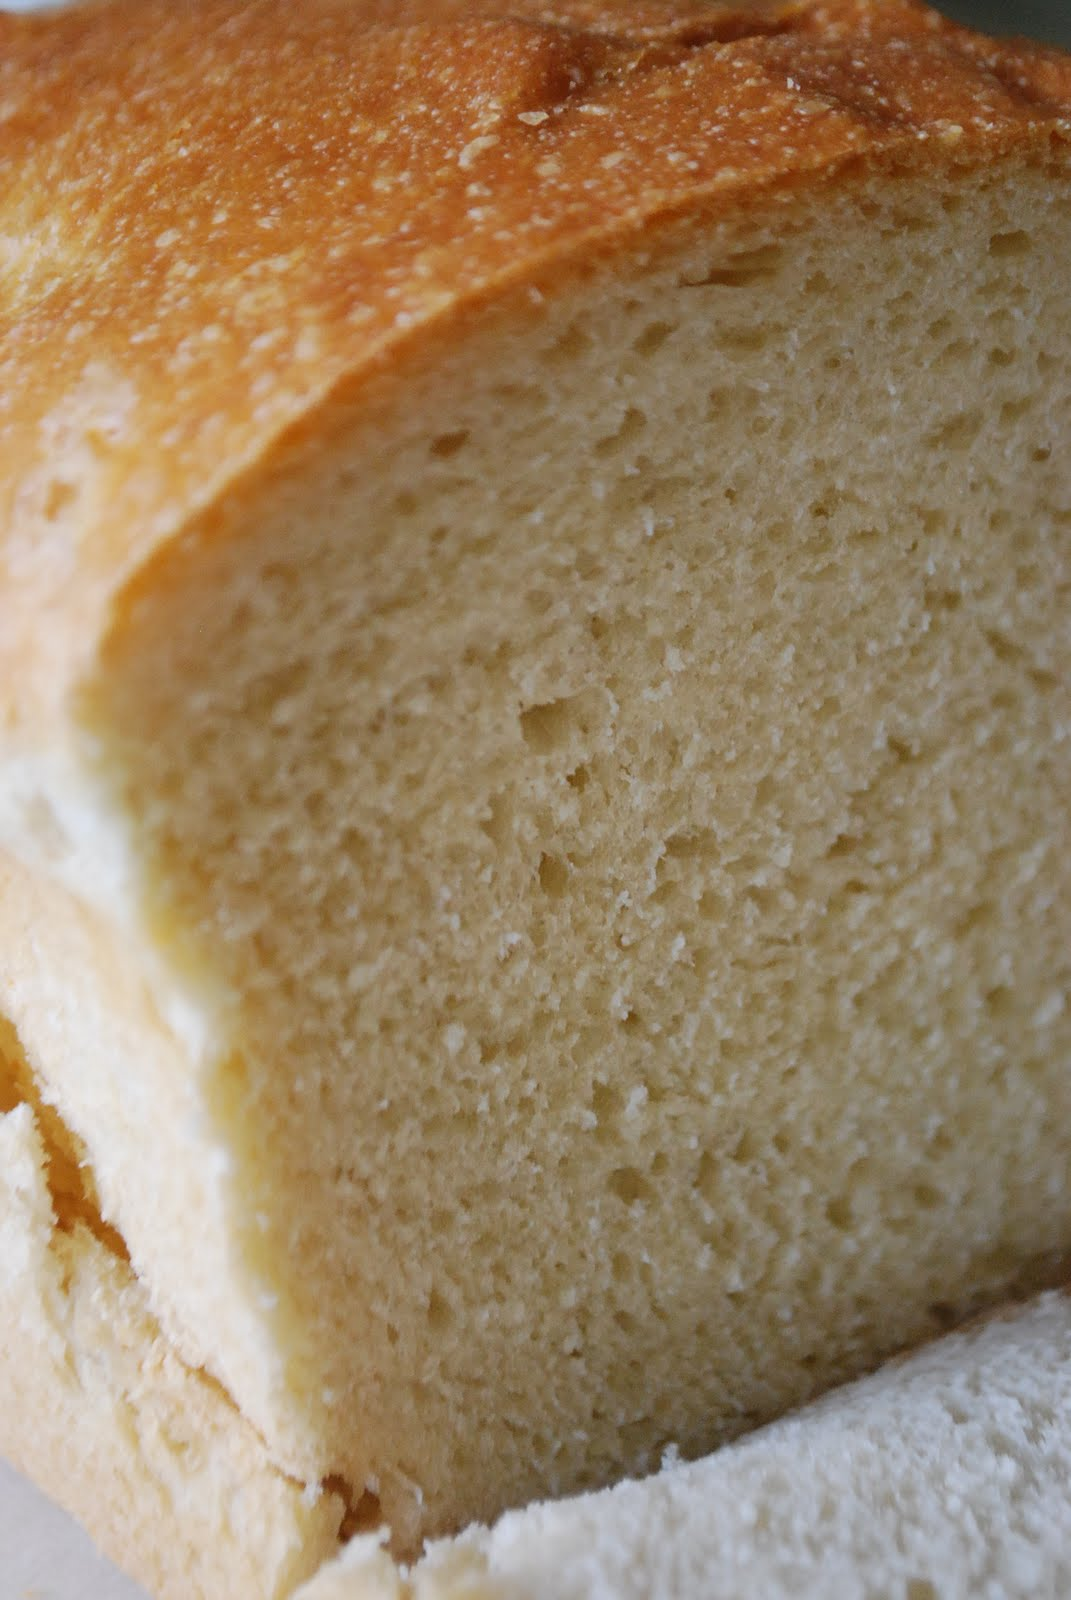 Delicious Dishes: The Absolute BEST Sandwich Bread